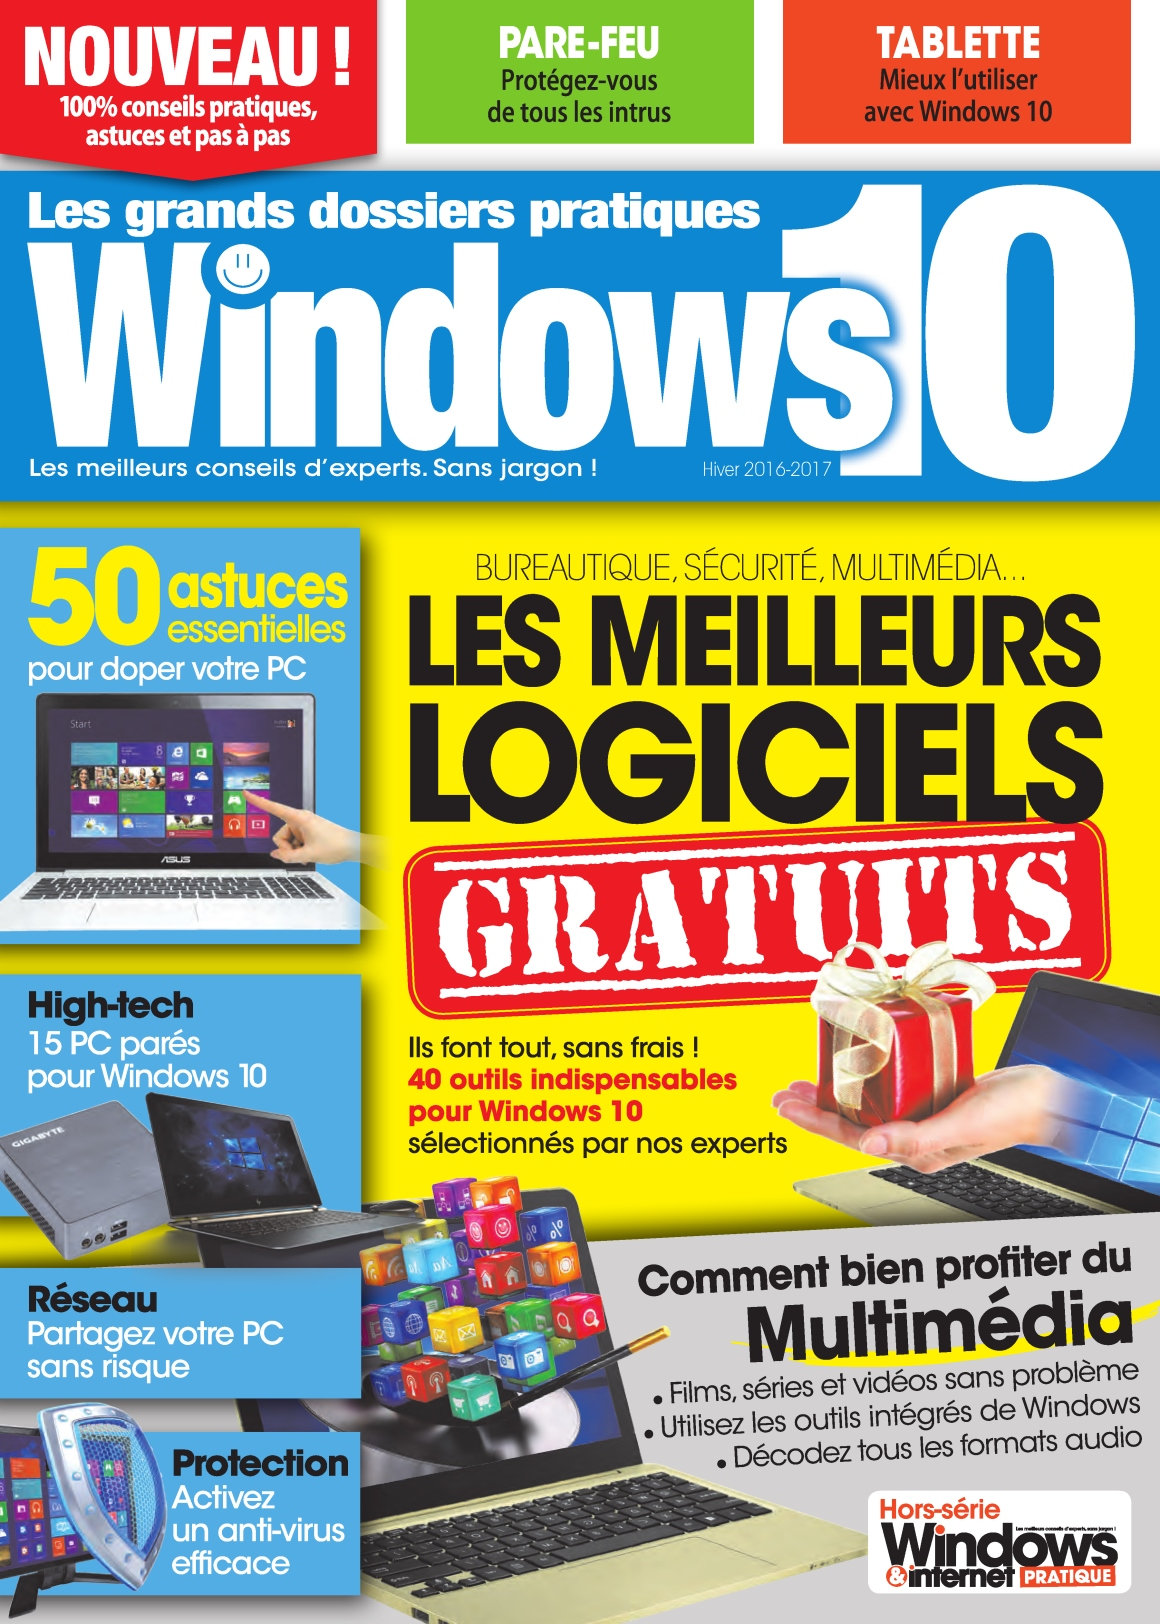 Windows & Internet Pratique Hors-Série Windows 10 - Hiver 2016-2017